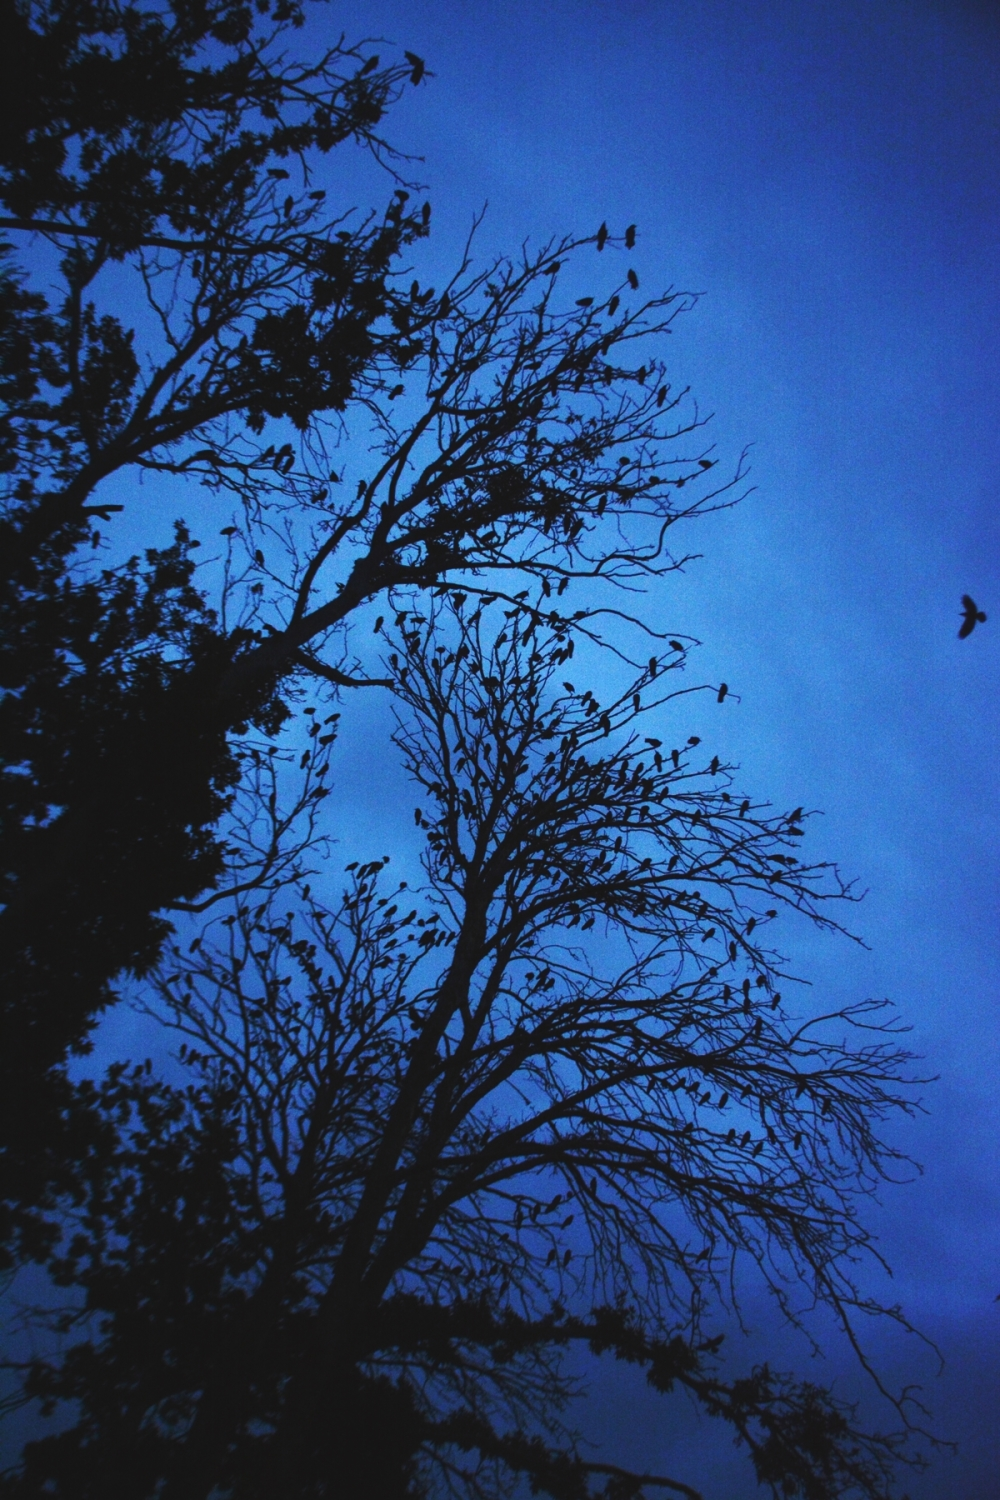 Trees with Crows's leaves